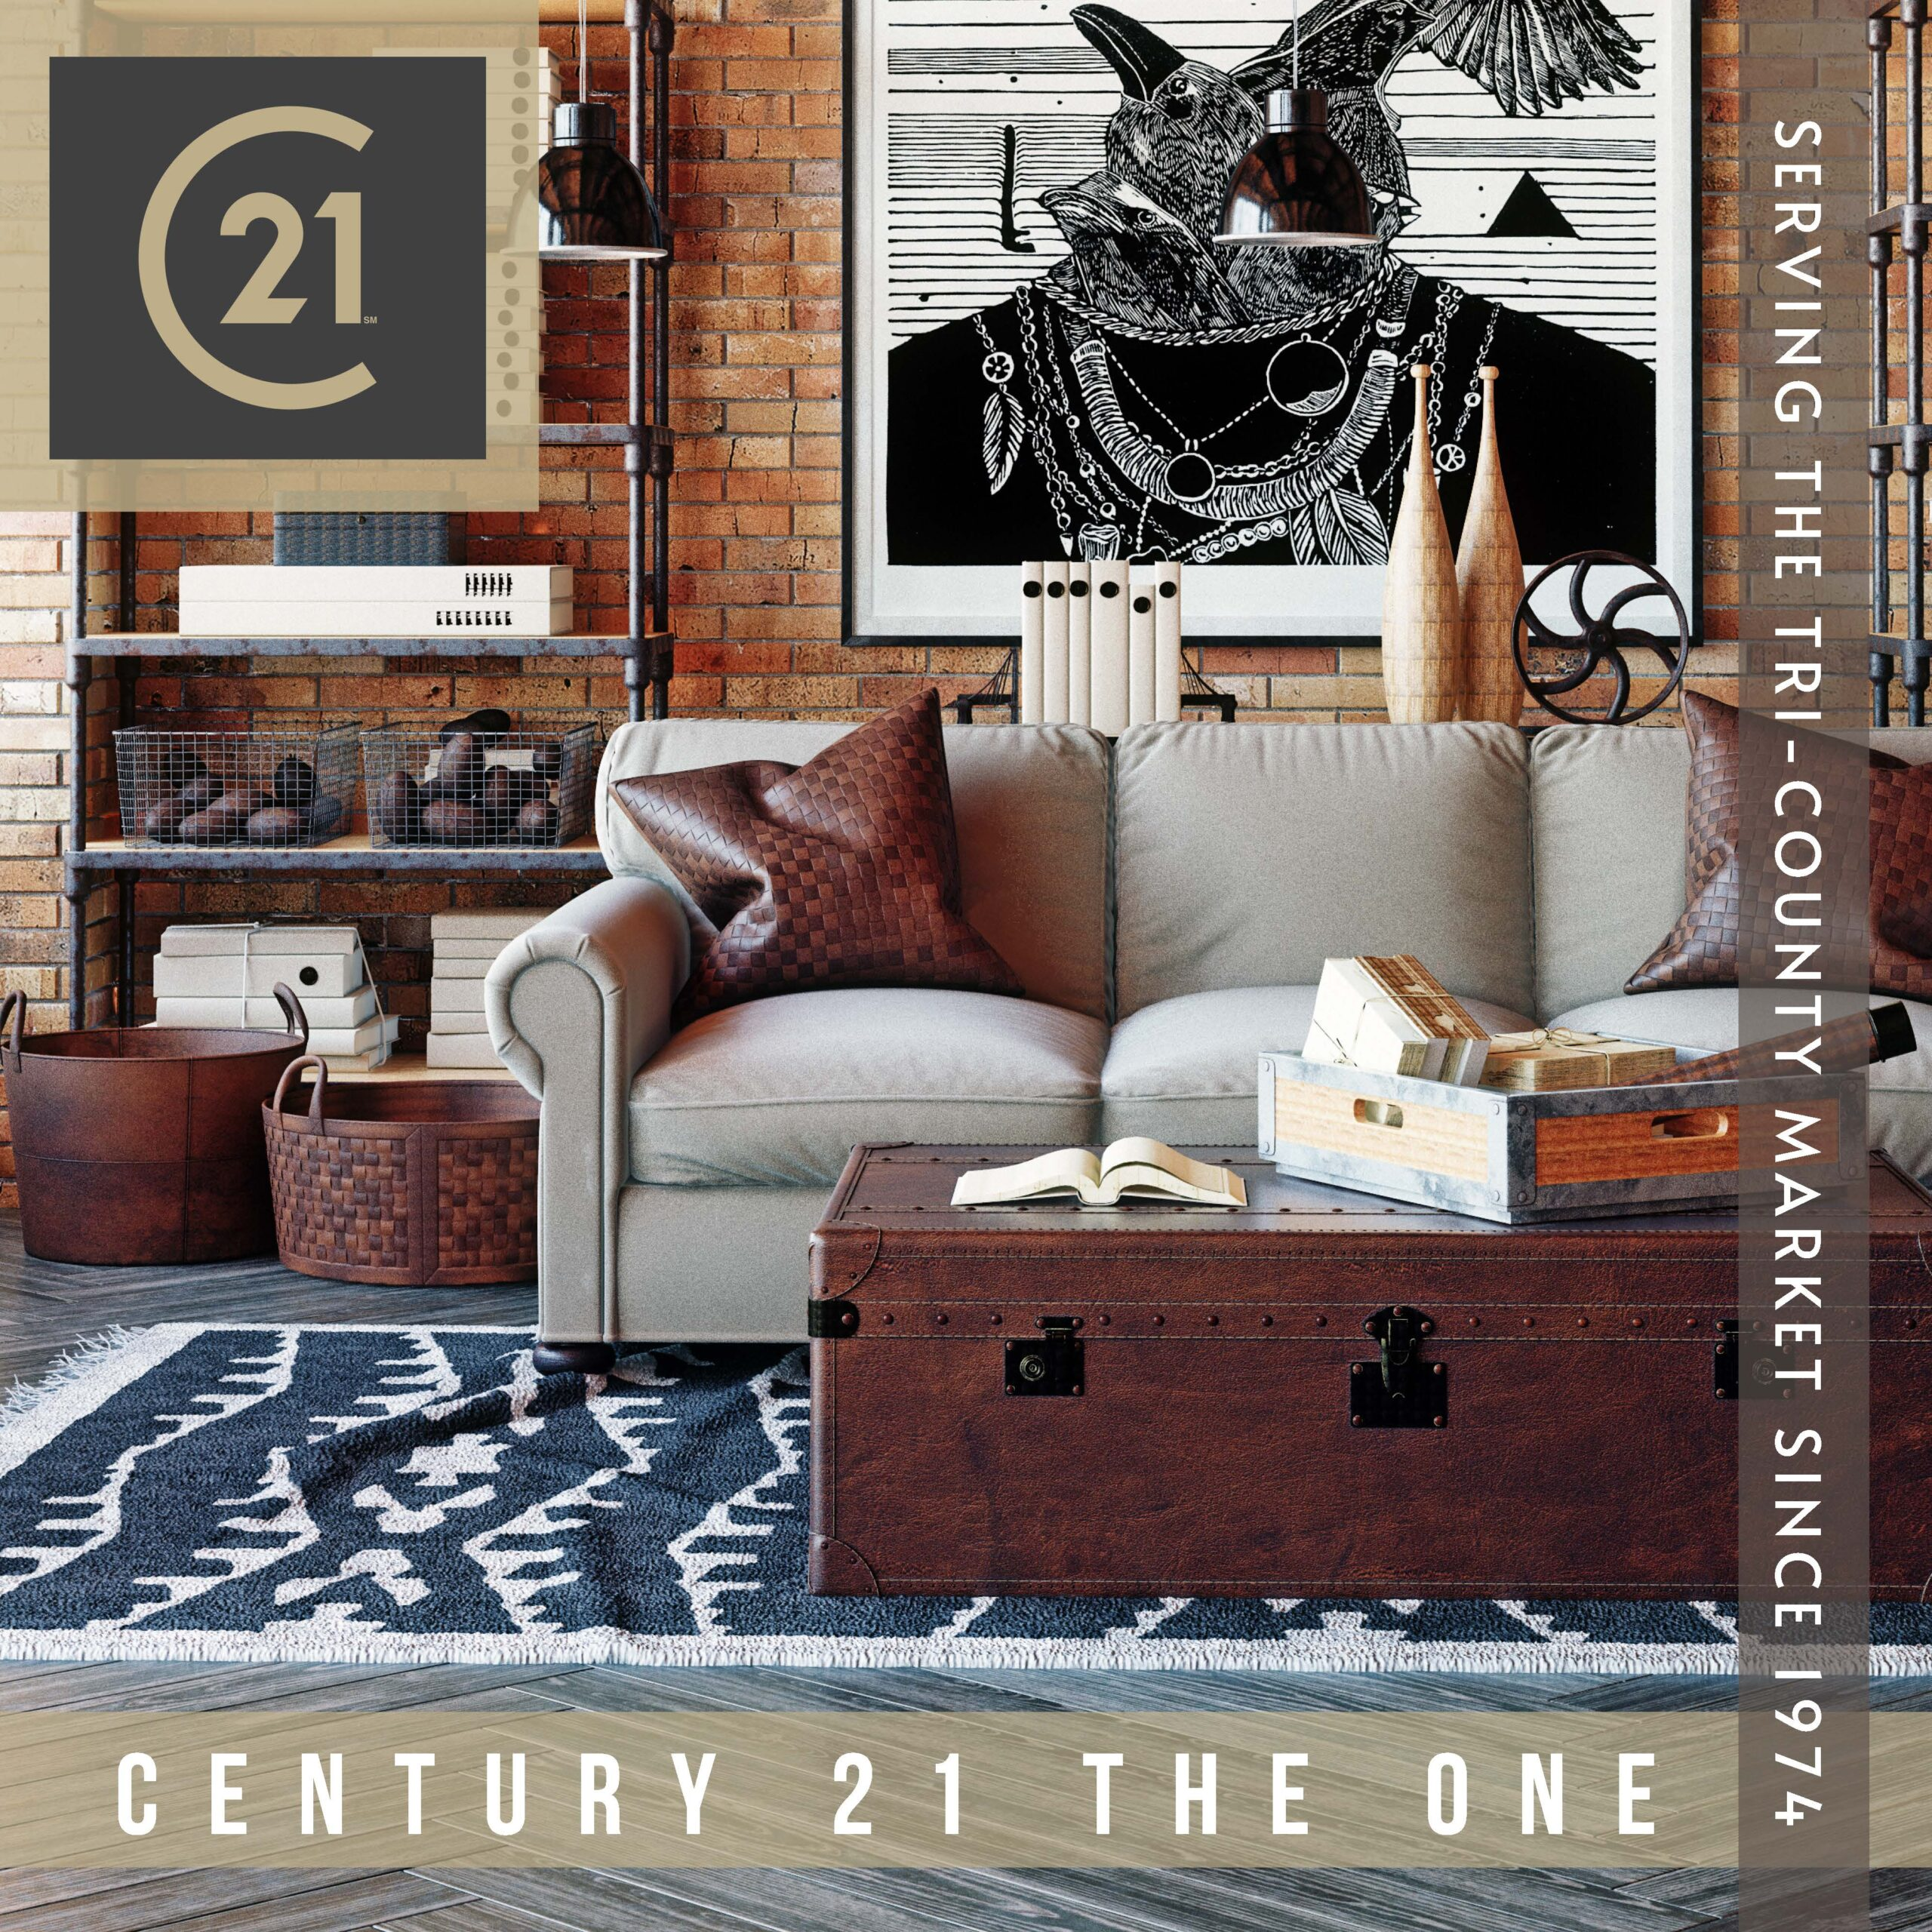 Century 21 The One - concepts -square-instagram-facebook_Page_06